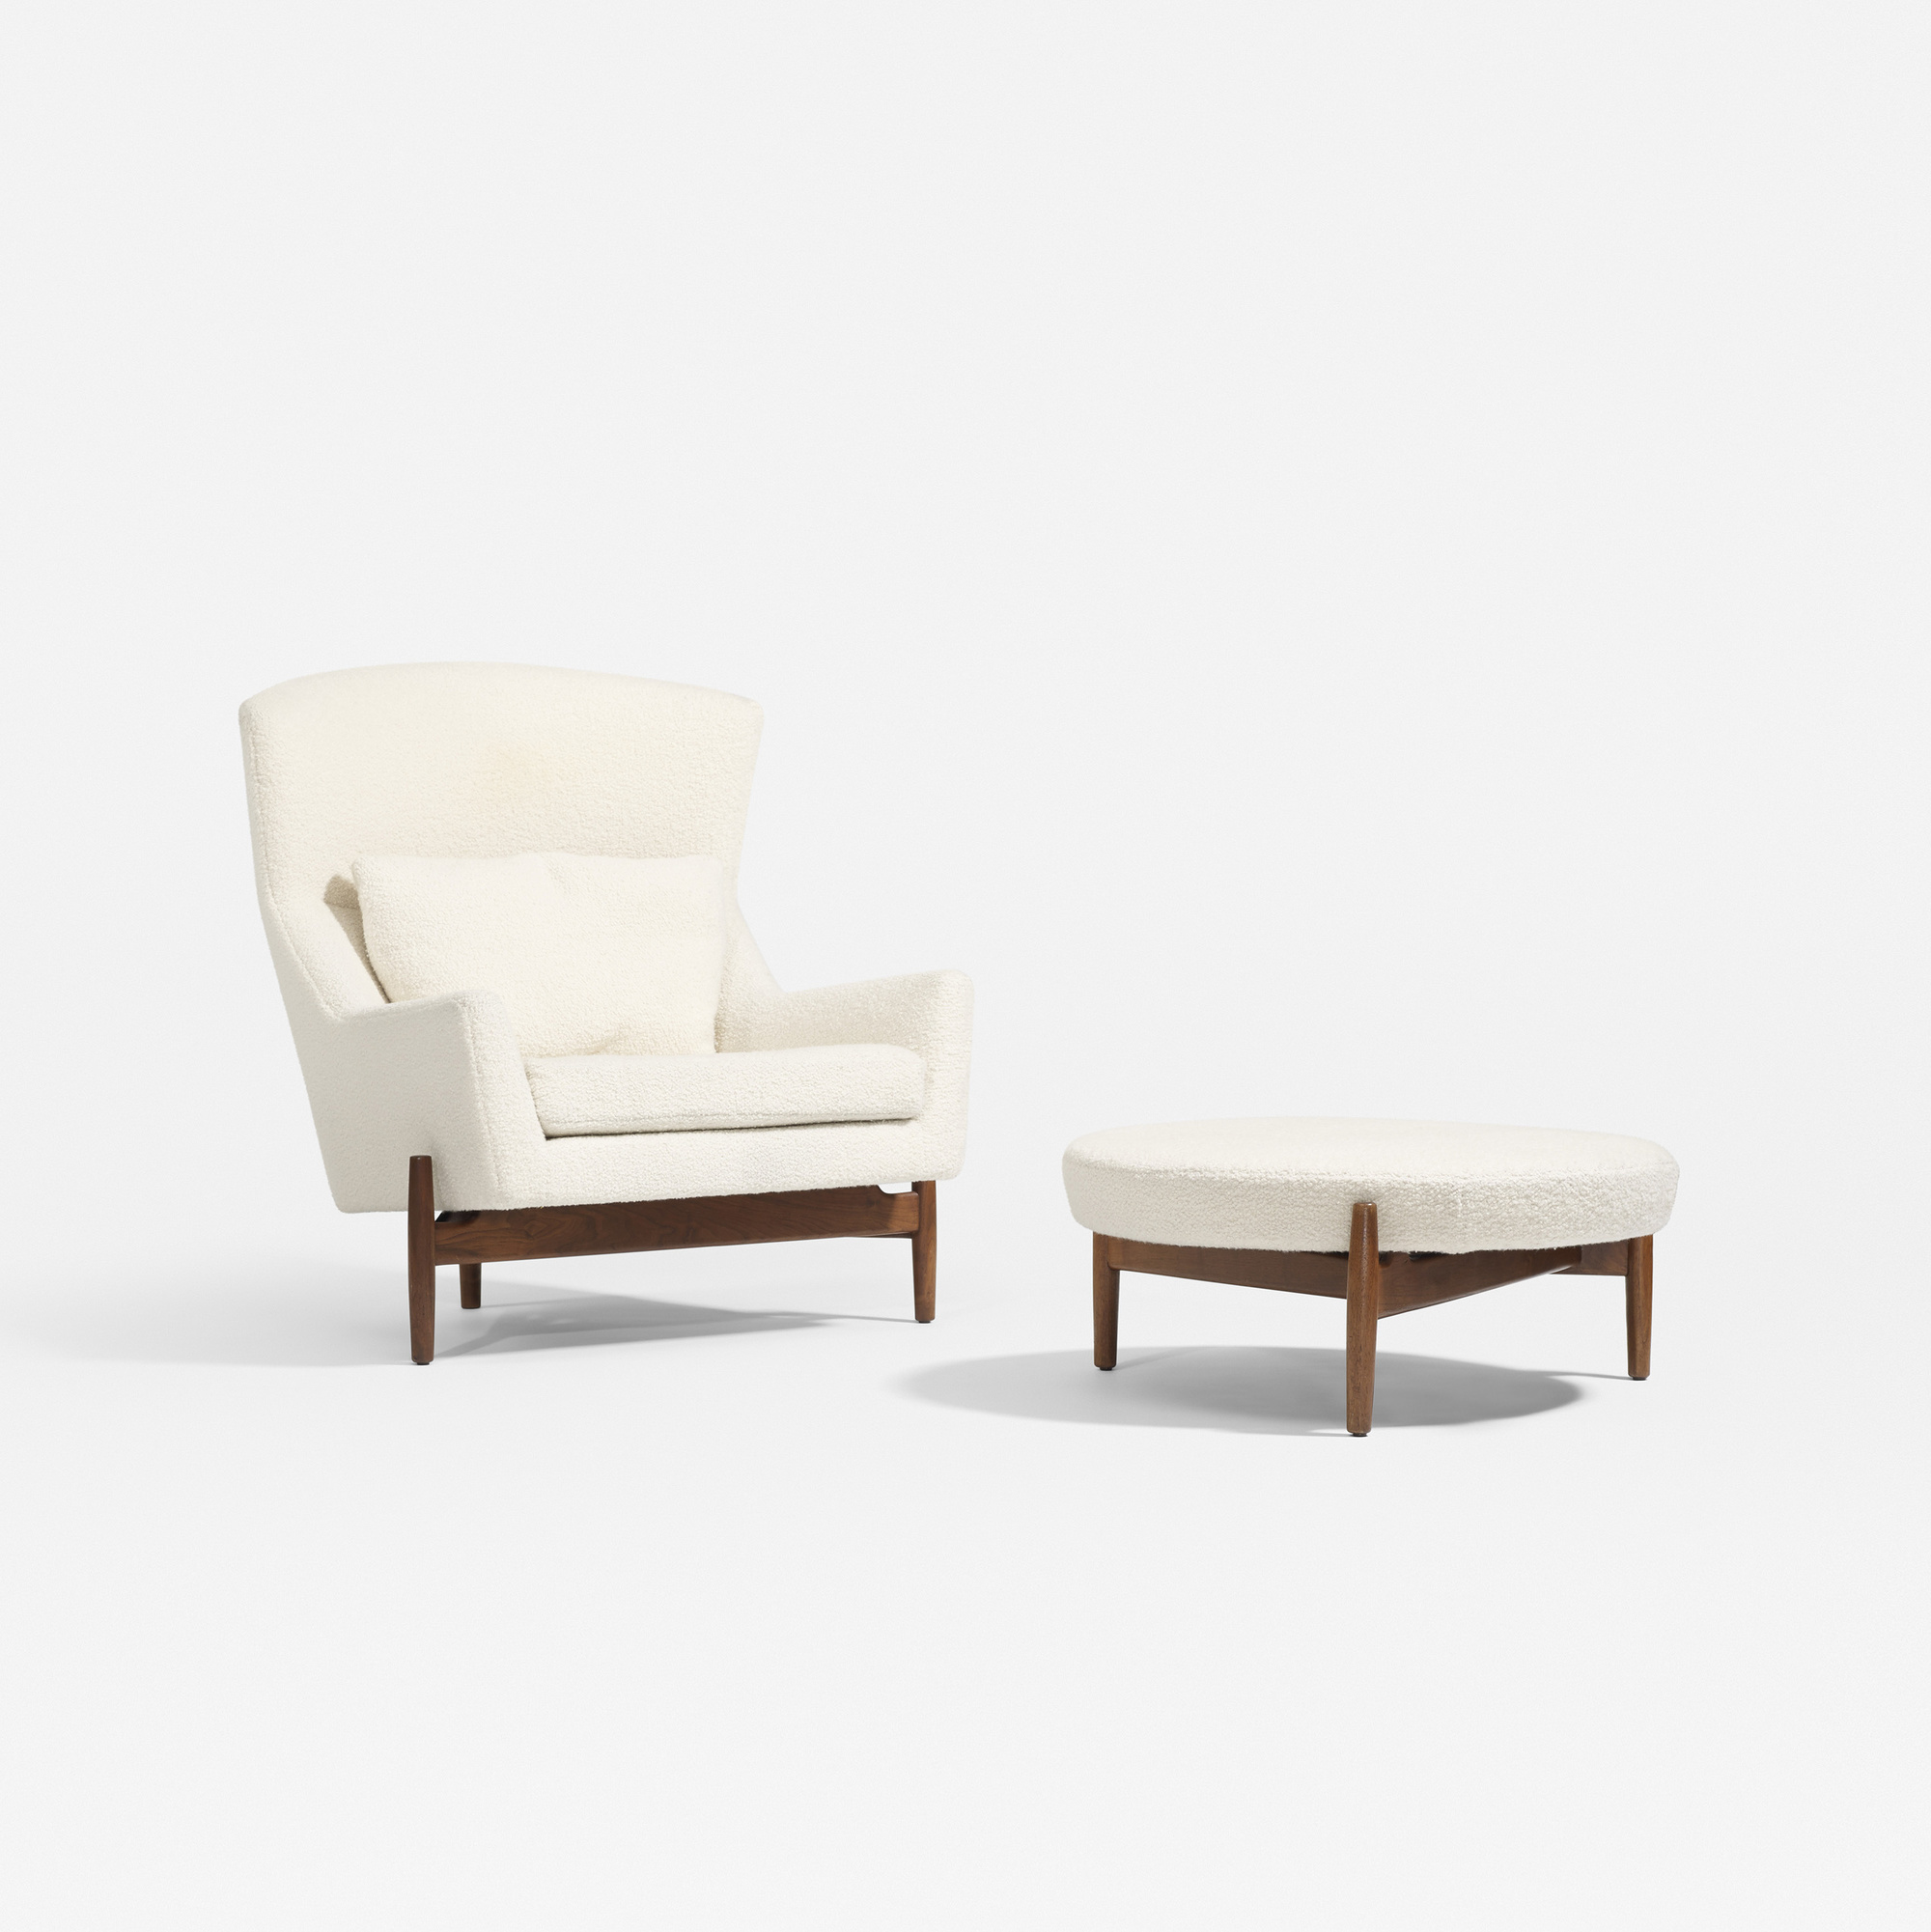 251 jens risom lounge chair and ottoman design 22 october